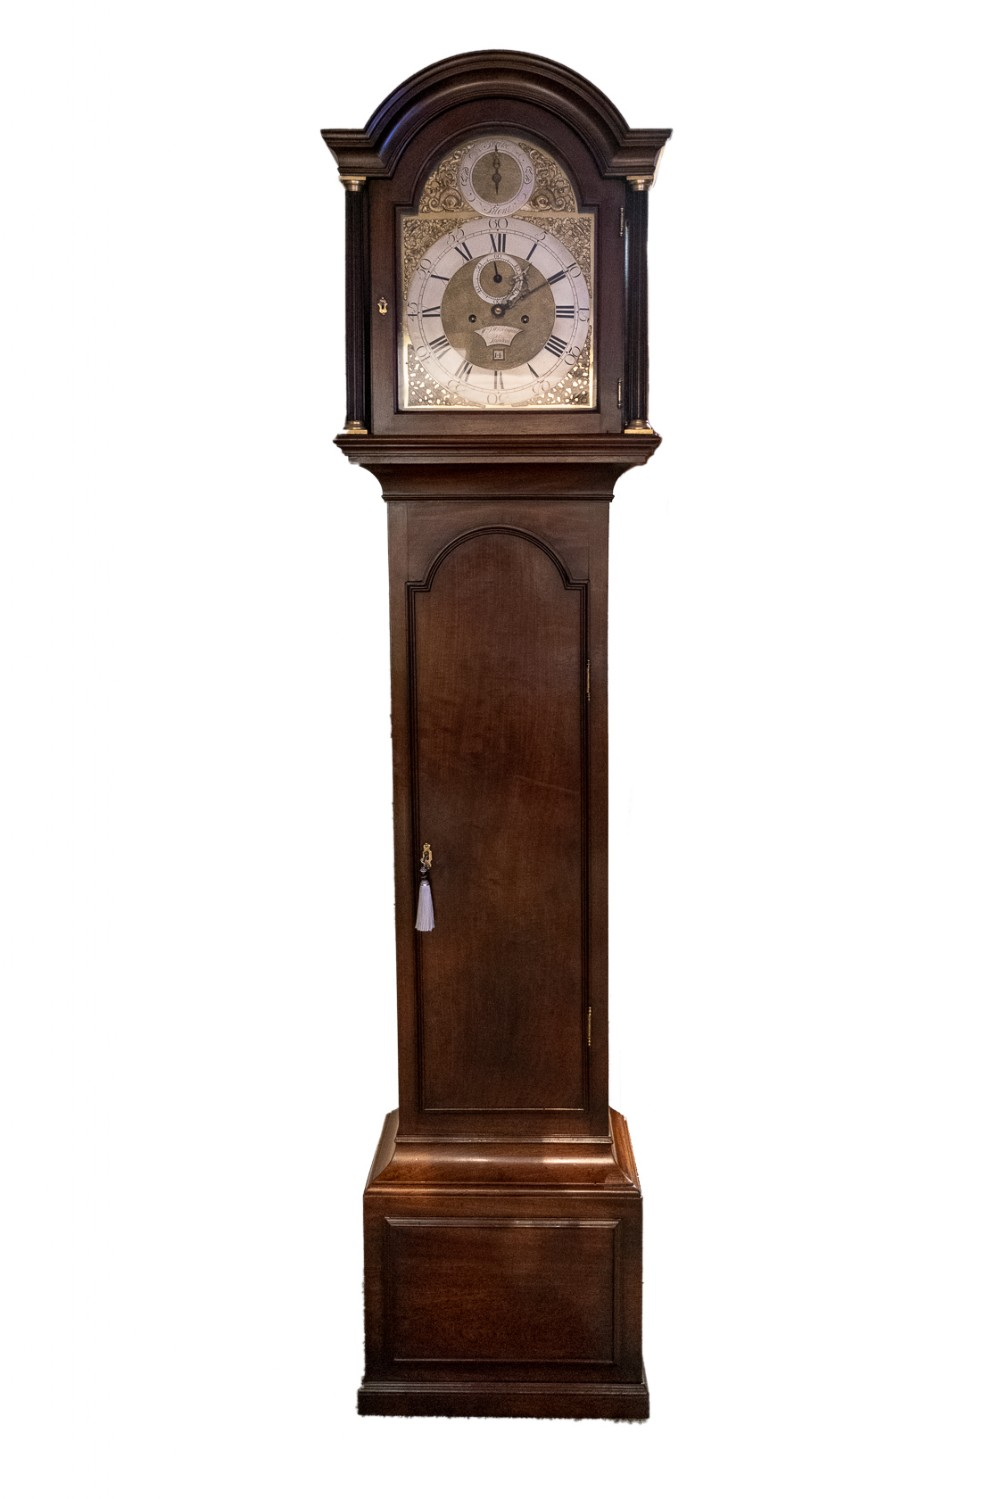 8 day arched brass dial longcase clock william whitebread london